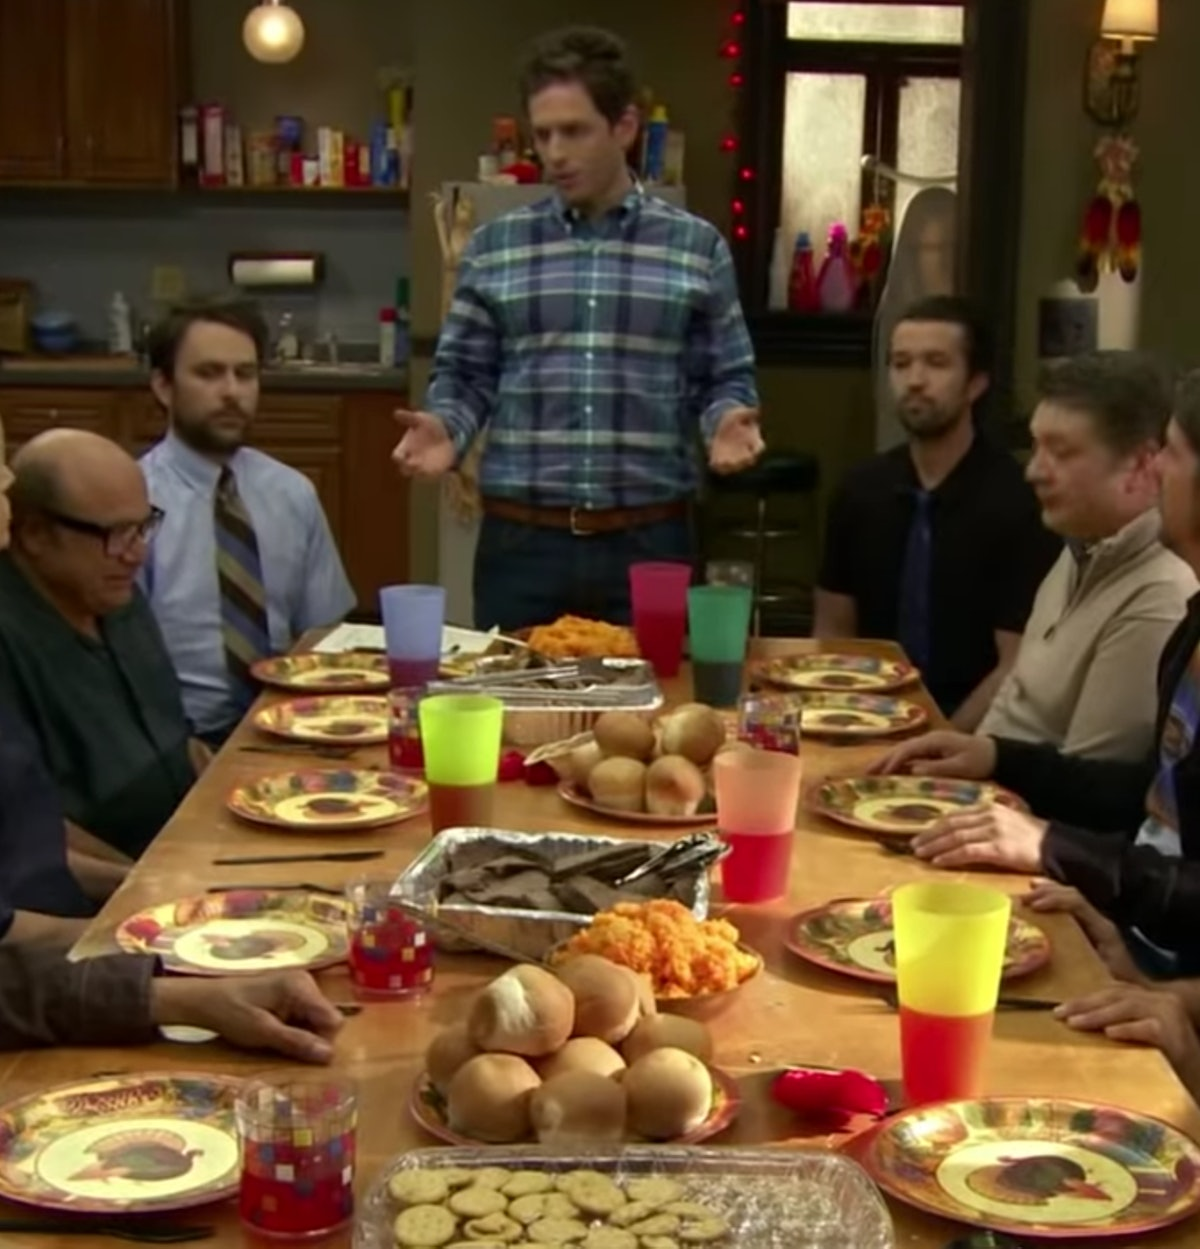 Here are some fun Thanksgiving date ideas inspired by your favorite TV shows.